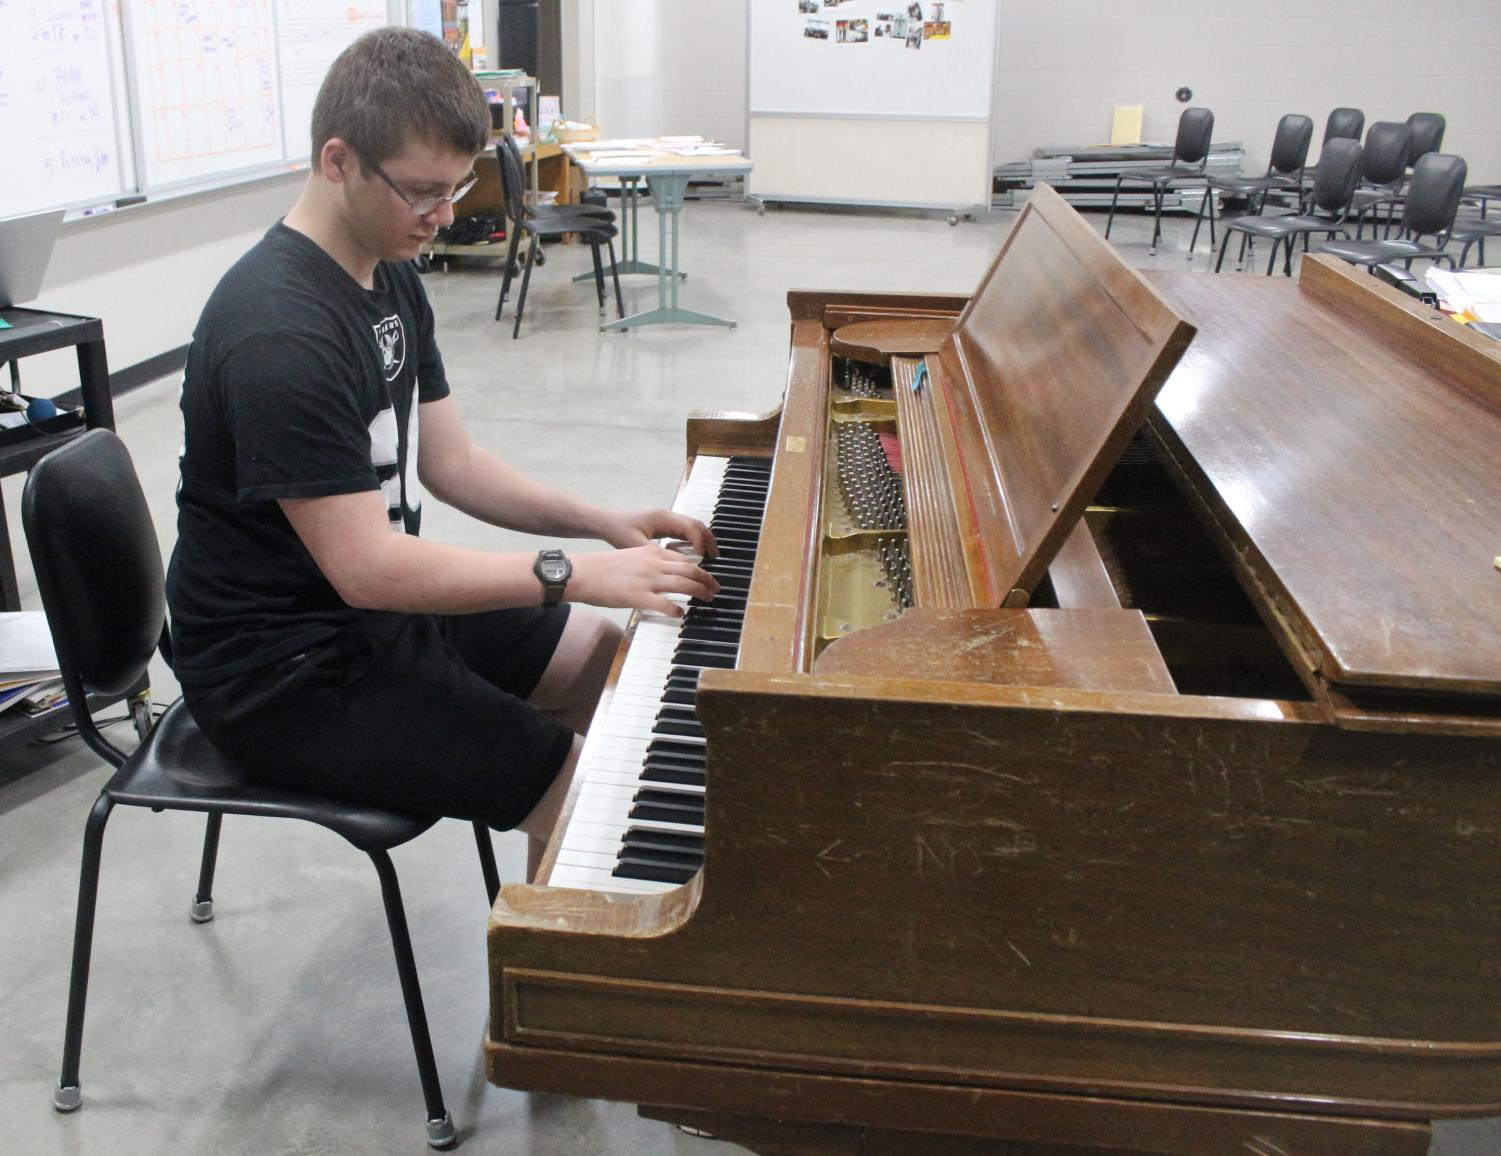 Sophomore Skyler Edquist plays piano in room 1420 on April 29. Edquist has been playing piano since he was young.